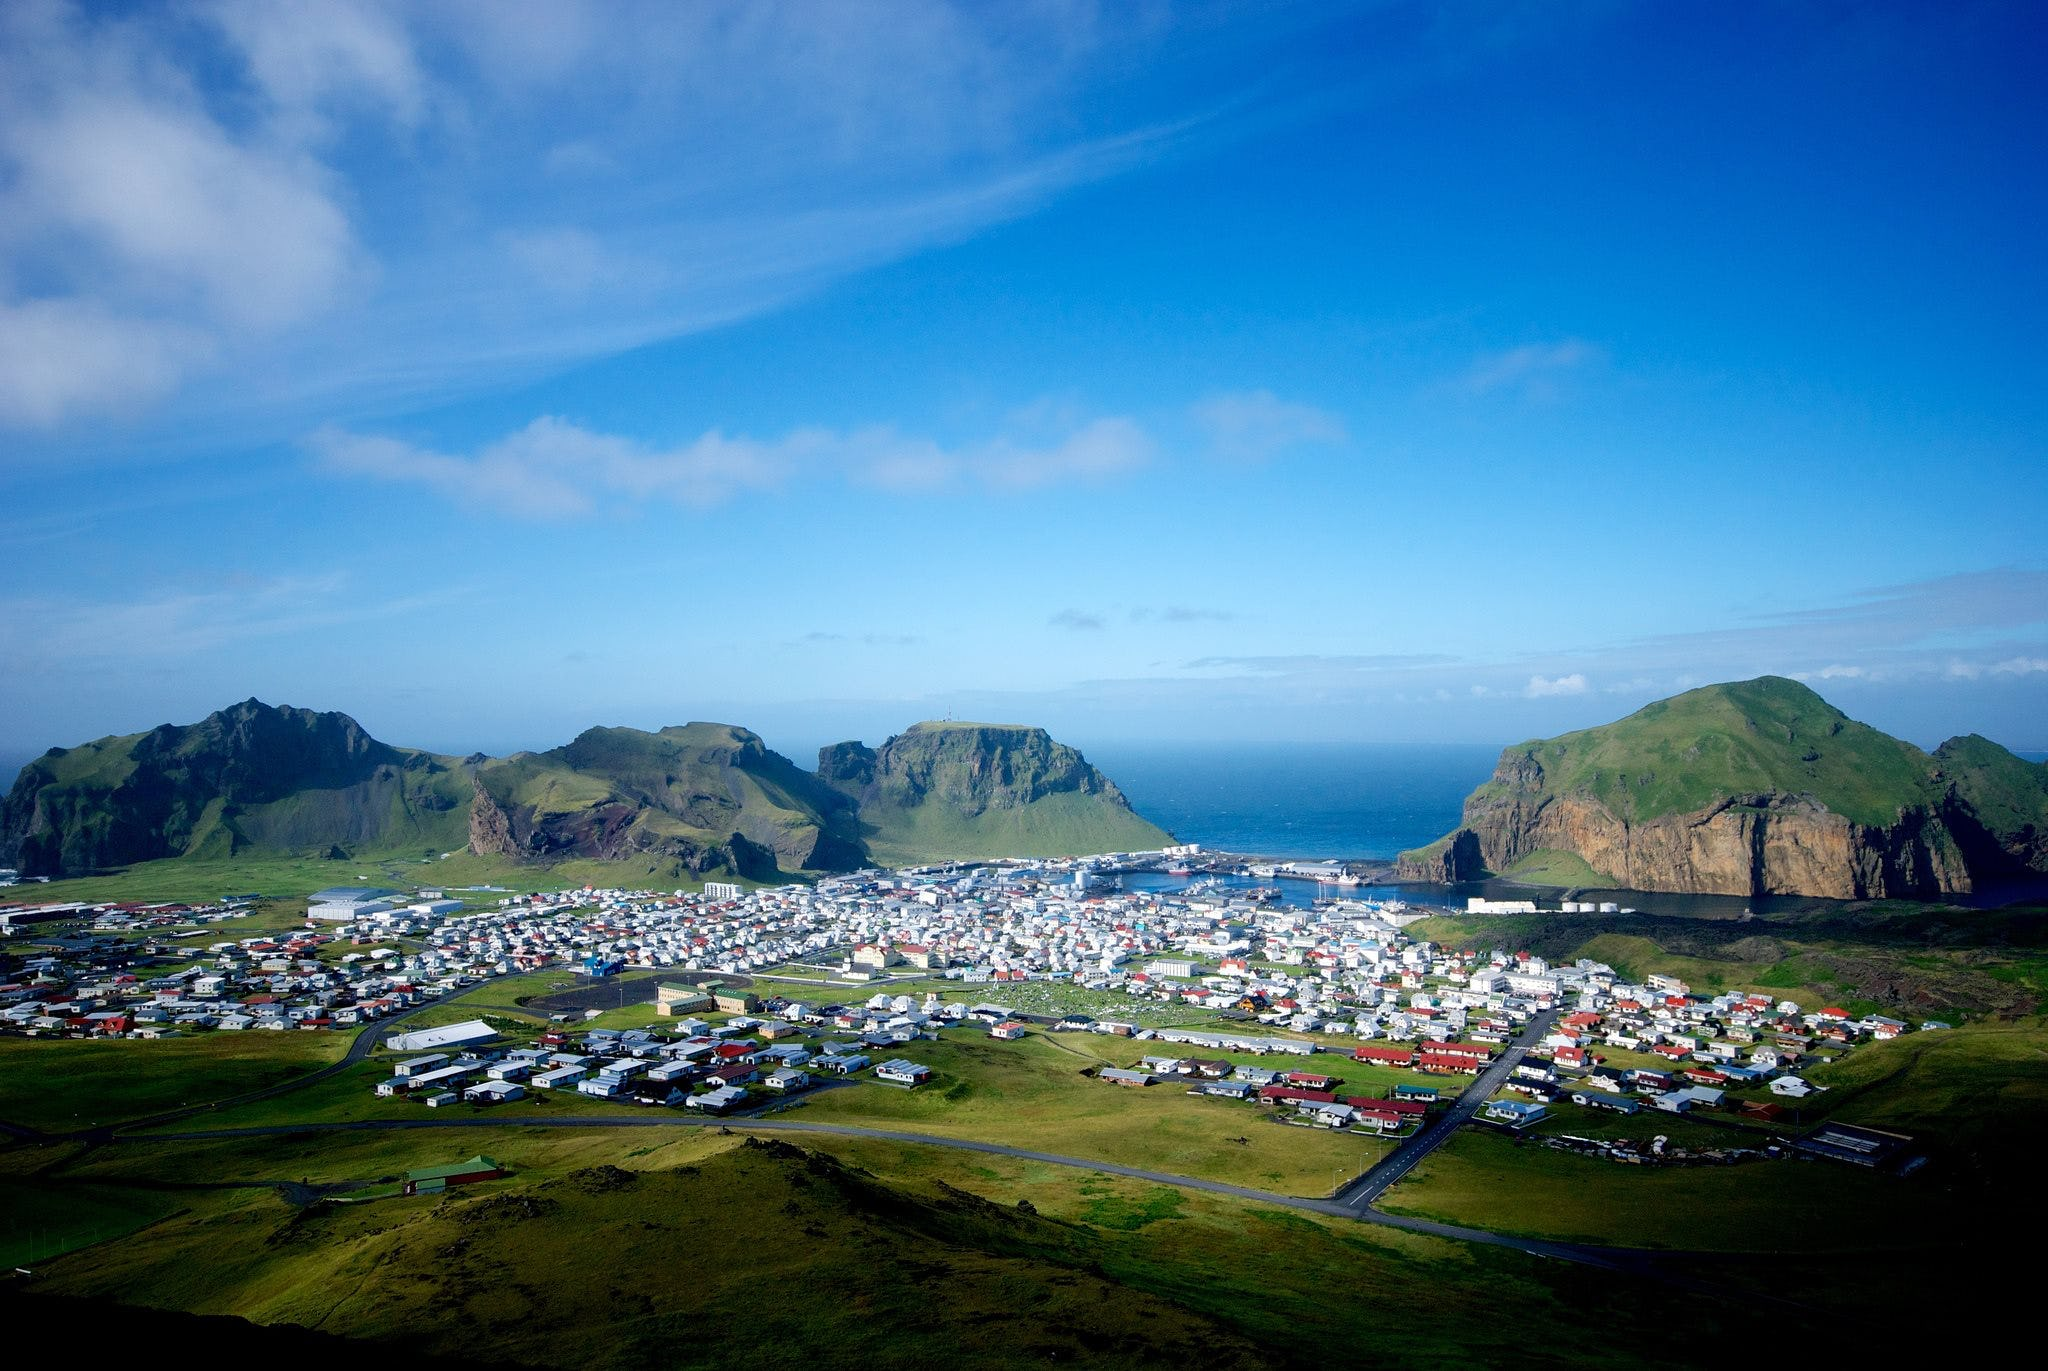 The beautiful Heimaey is a town and island in the Westman Islands.